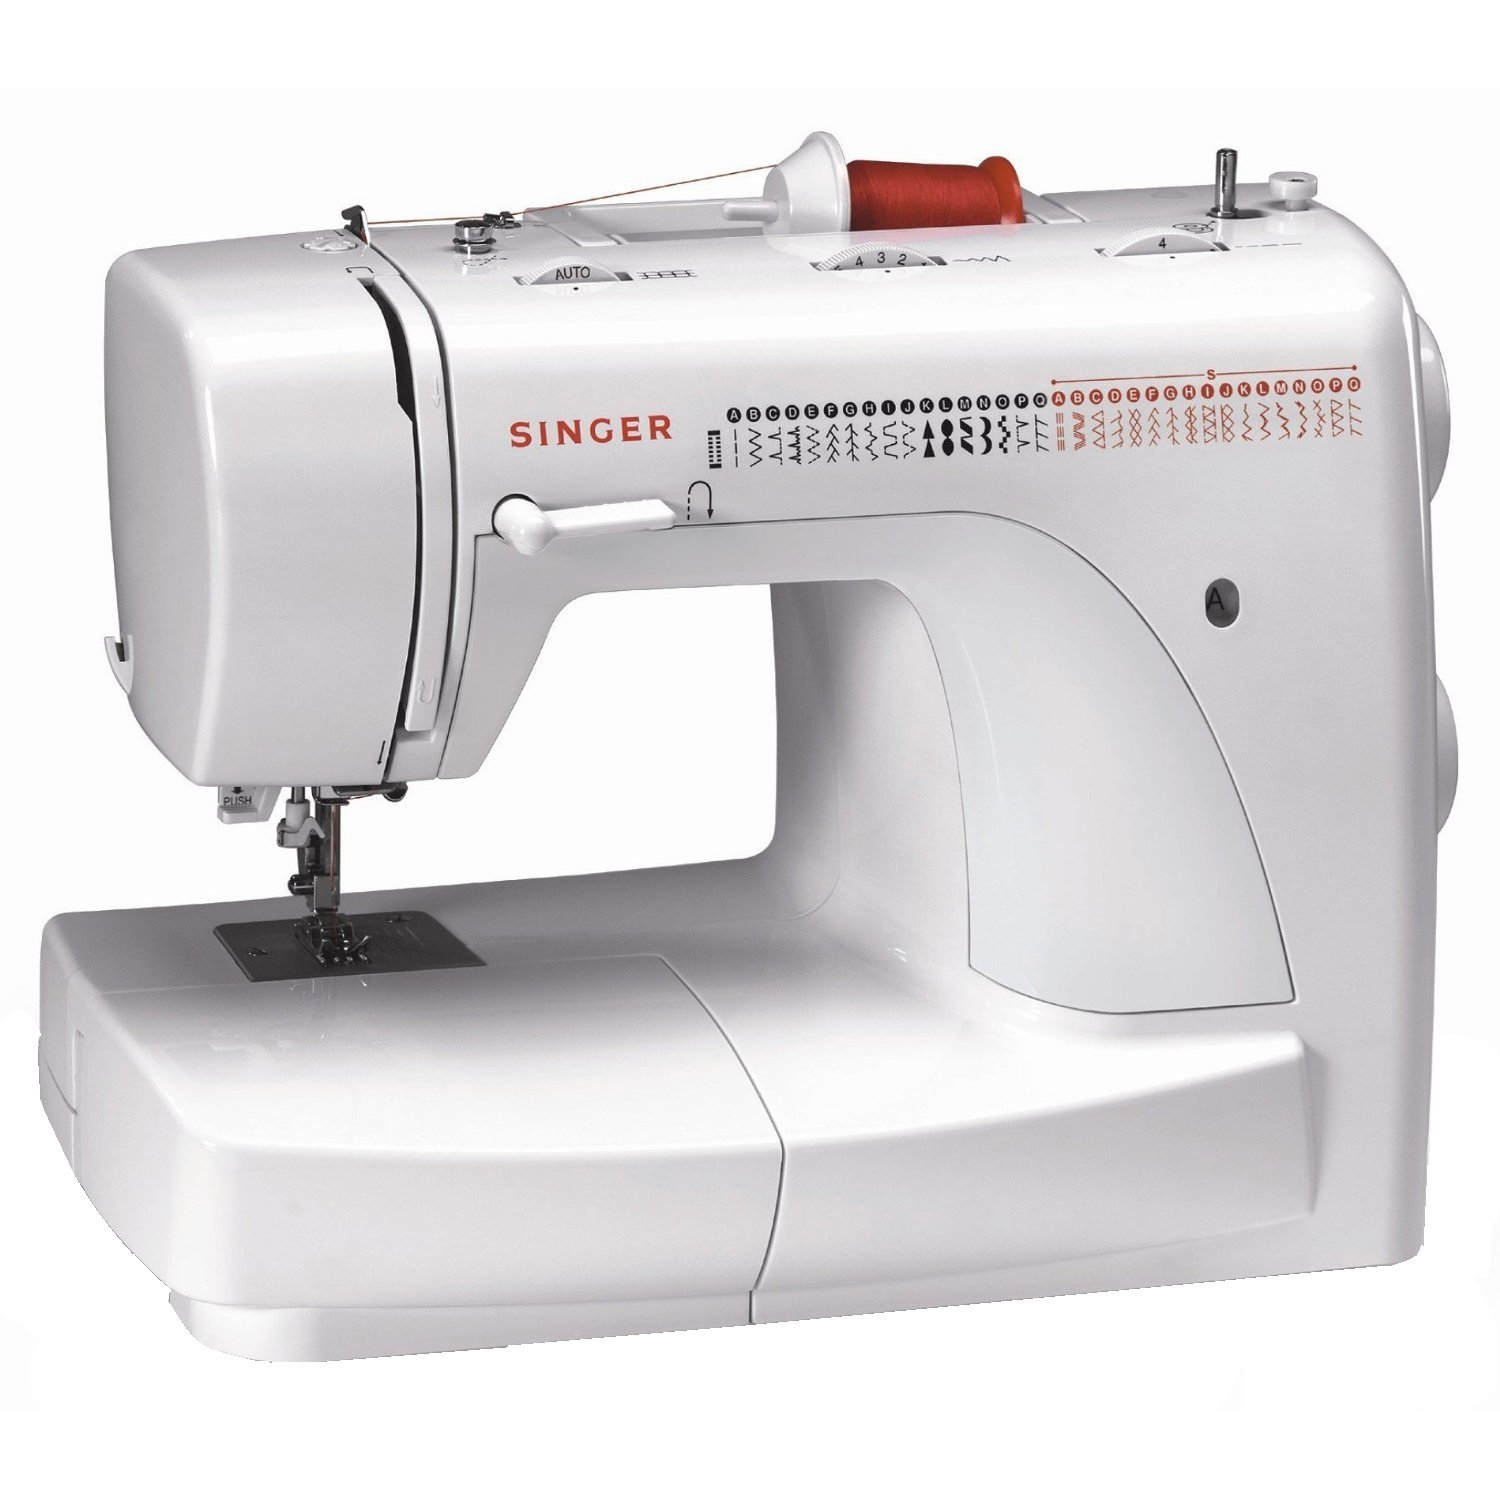 Amazoncom Singer 2932 Sewing Machine Printable Threading Guide Easy Crafts